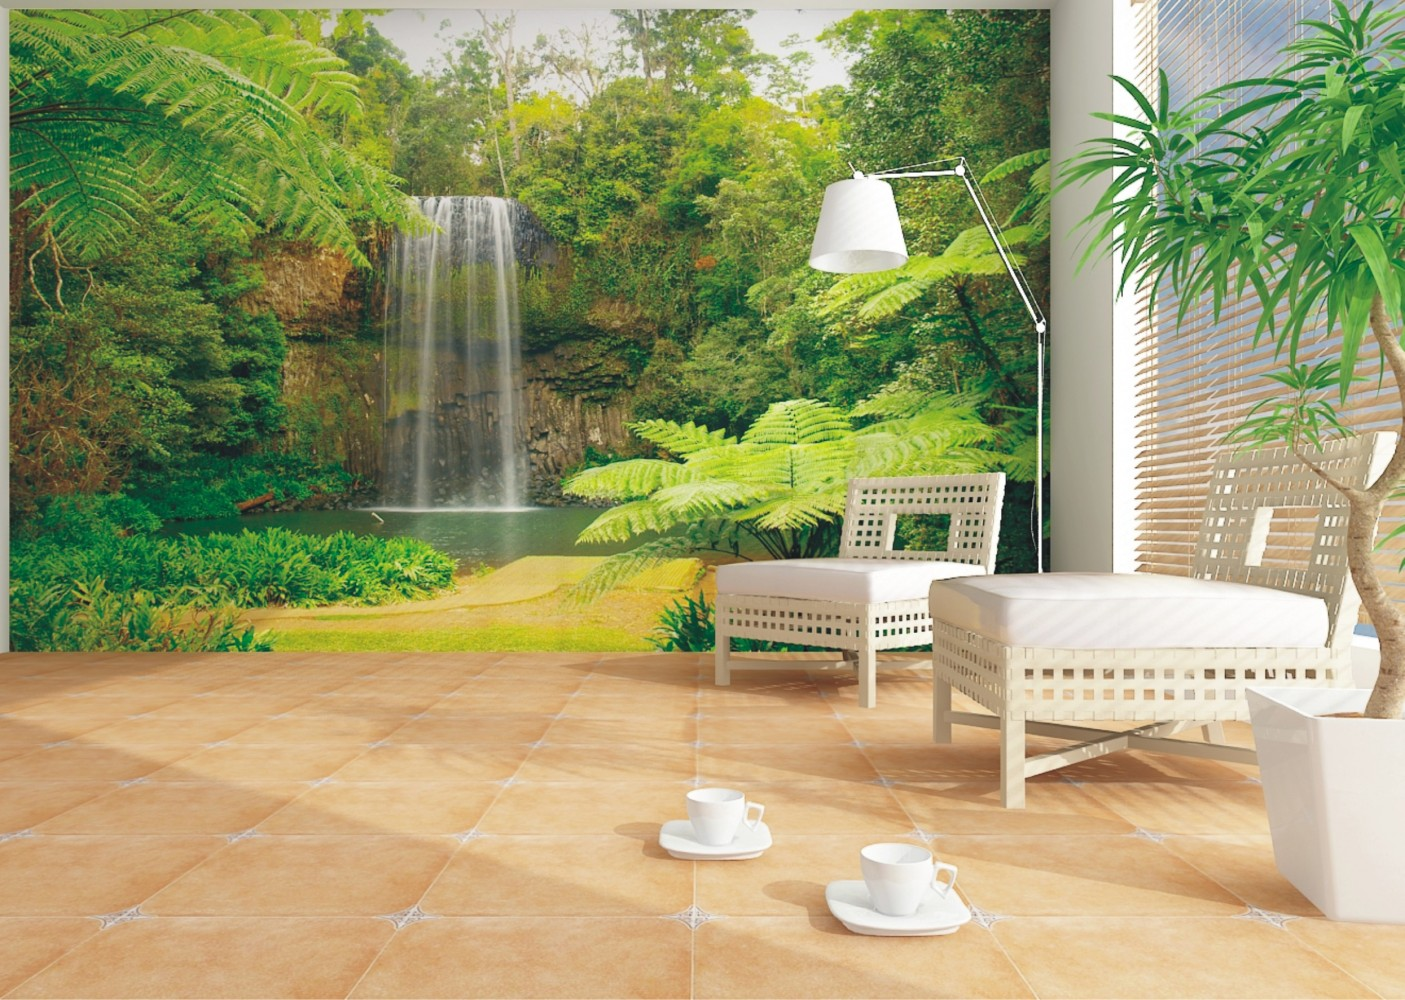 Wall mural wallpaper nature jungle downfall plant photo for Create wall mural